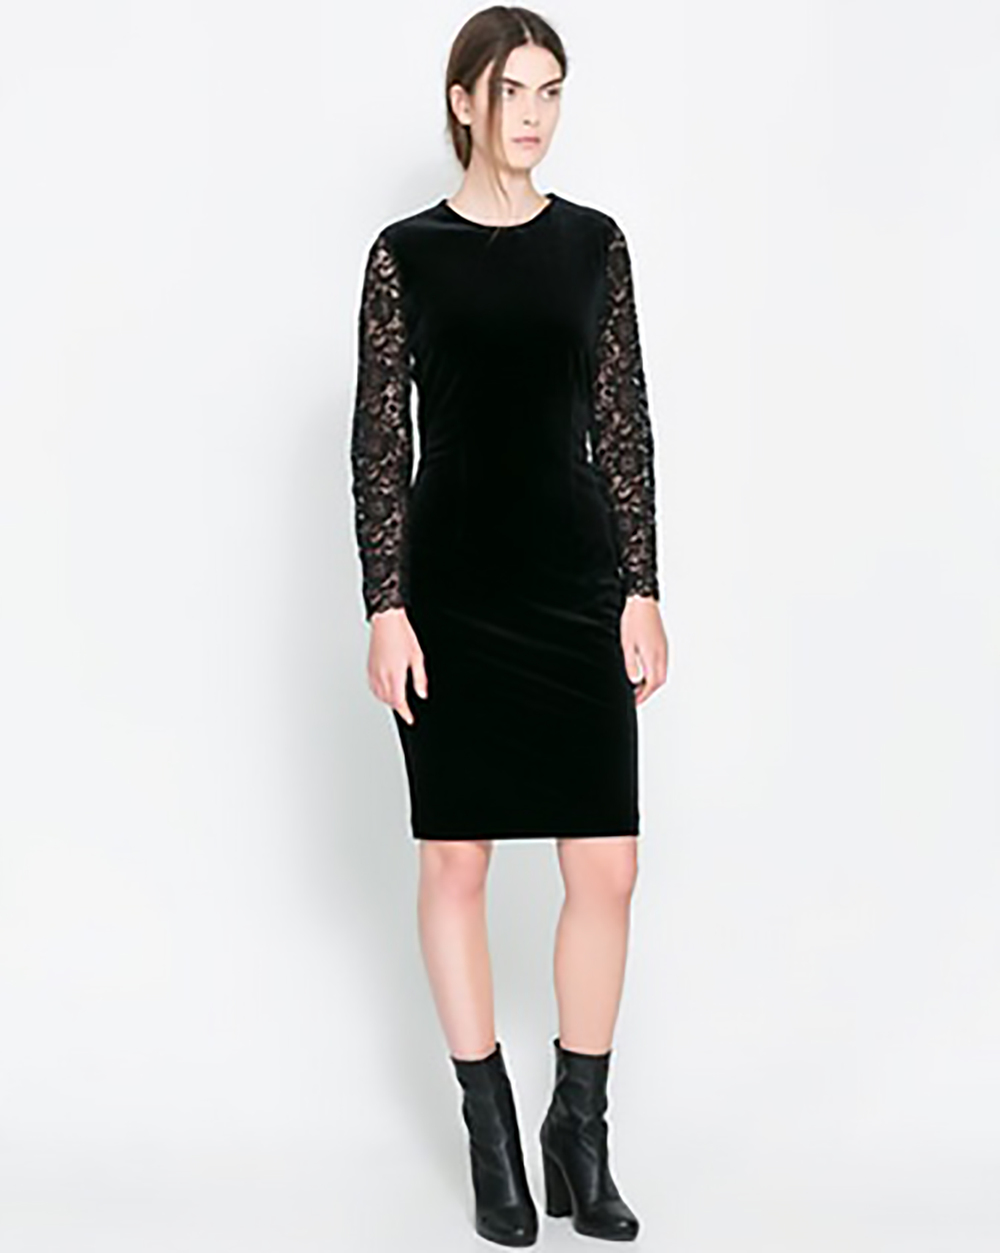 zara velvet lace dress holiday party 1500.jpg